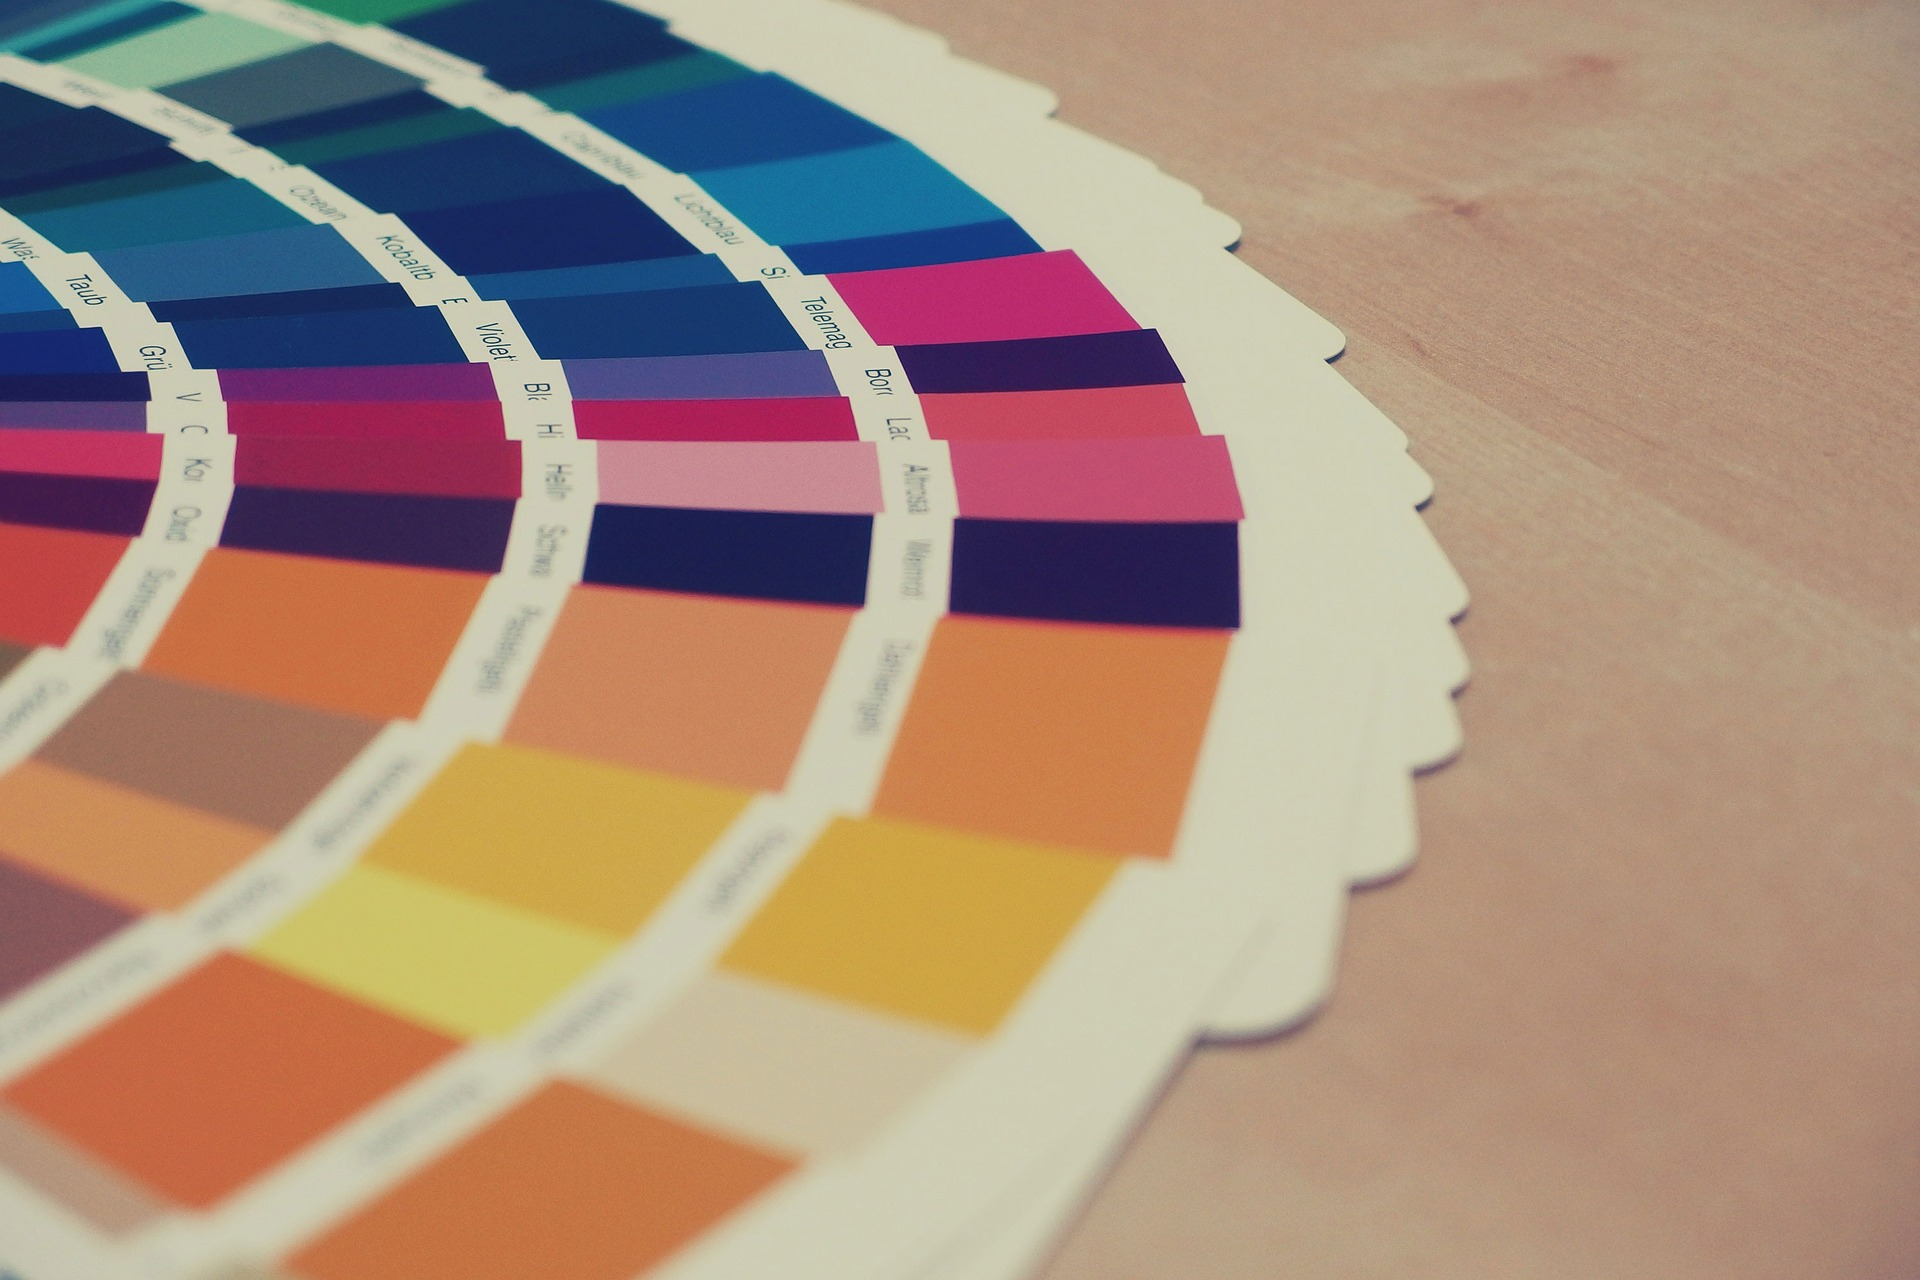 The 60-30-10 Rule makes choosing main and complementary paint colors easier